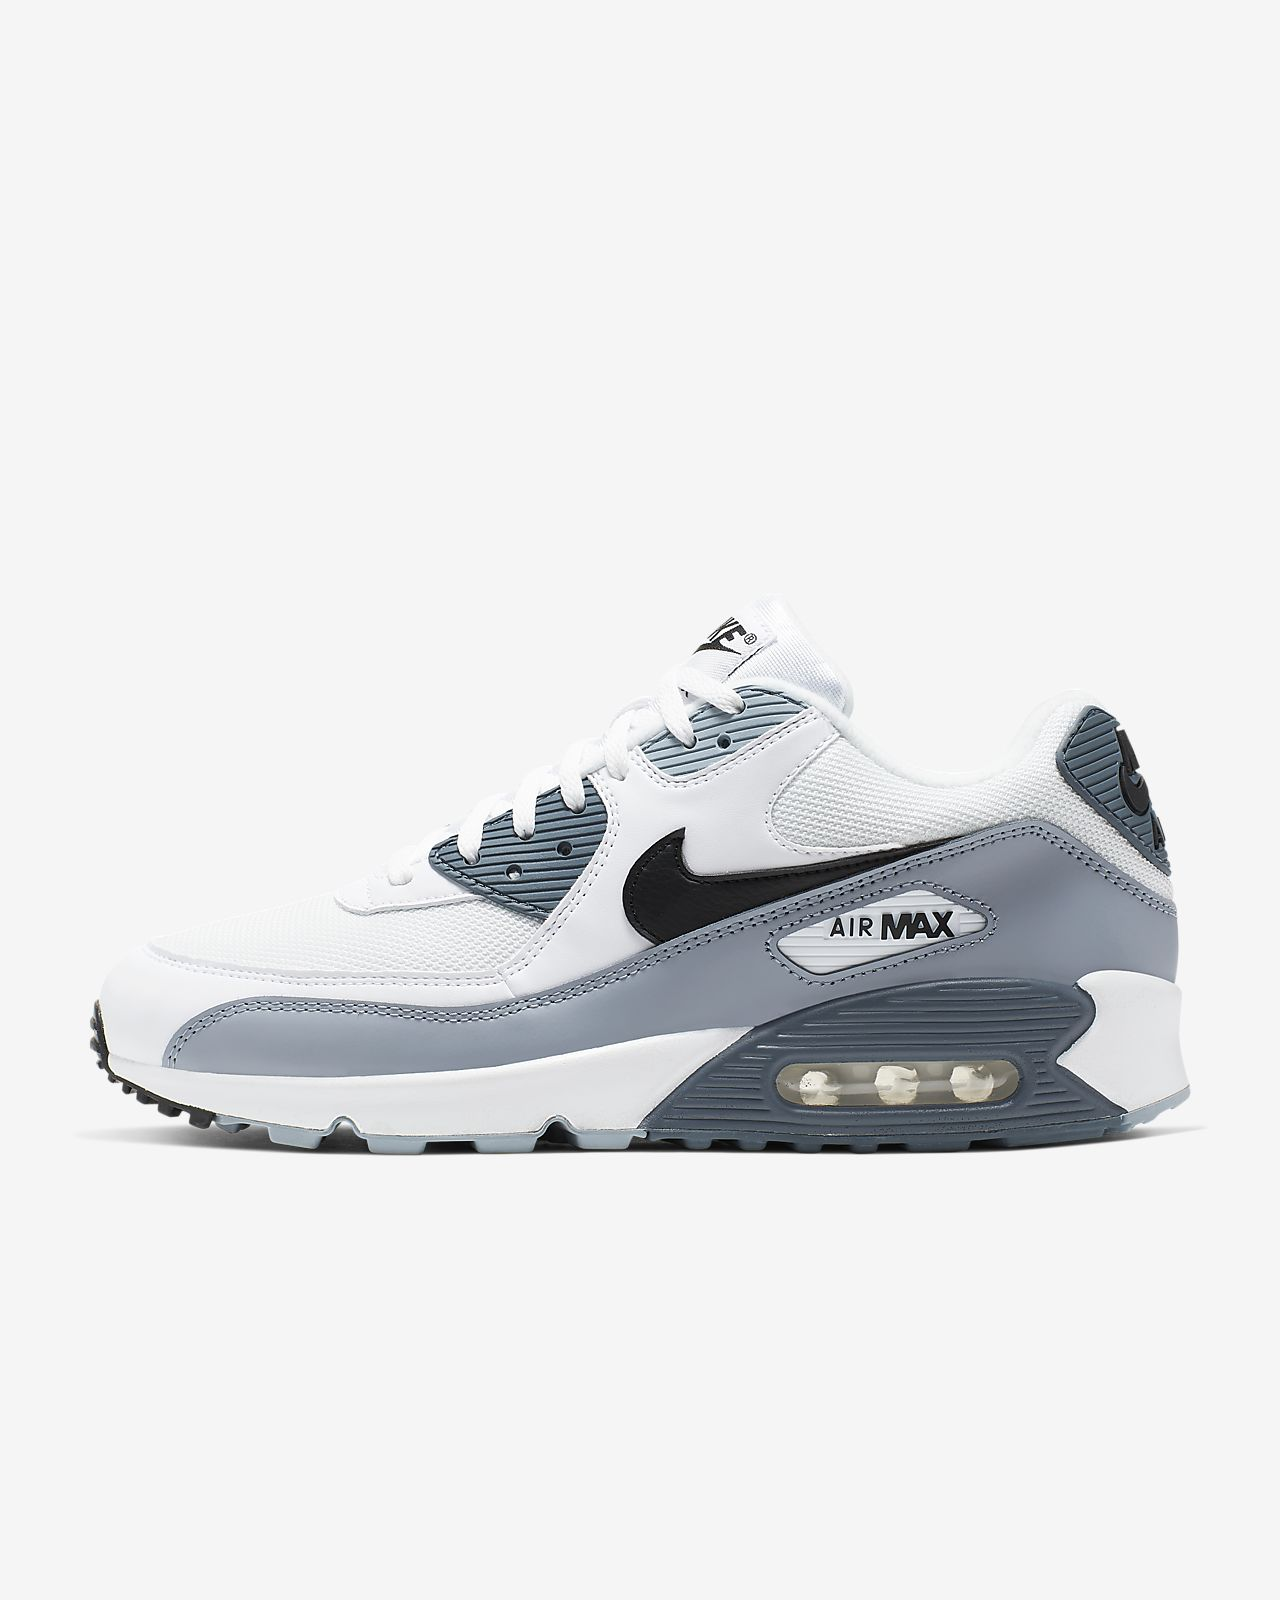 7021d73001b3 Nike Air Max 90 Essential Men s Shoe. Nike.com AU